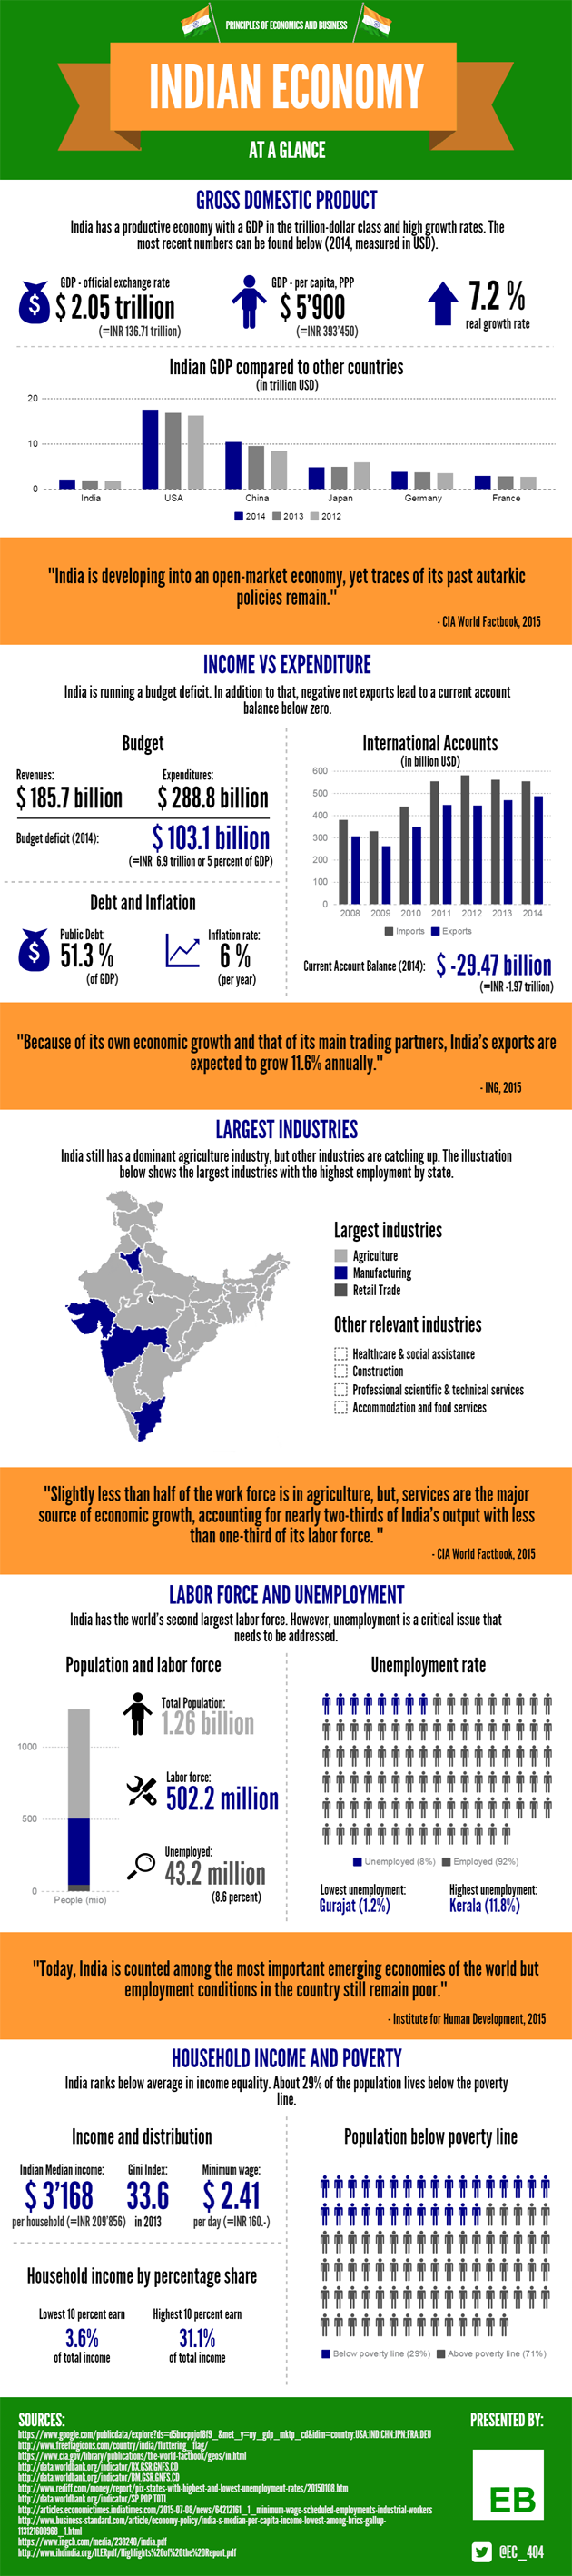 Indian Economy At a Glance [Infographic]